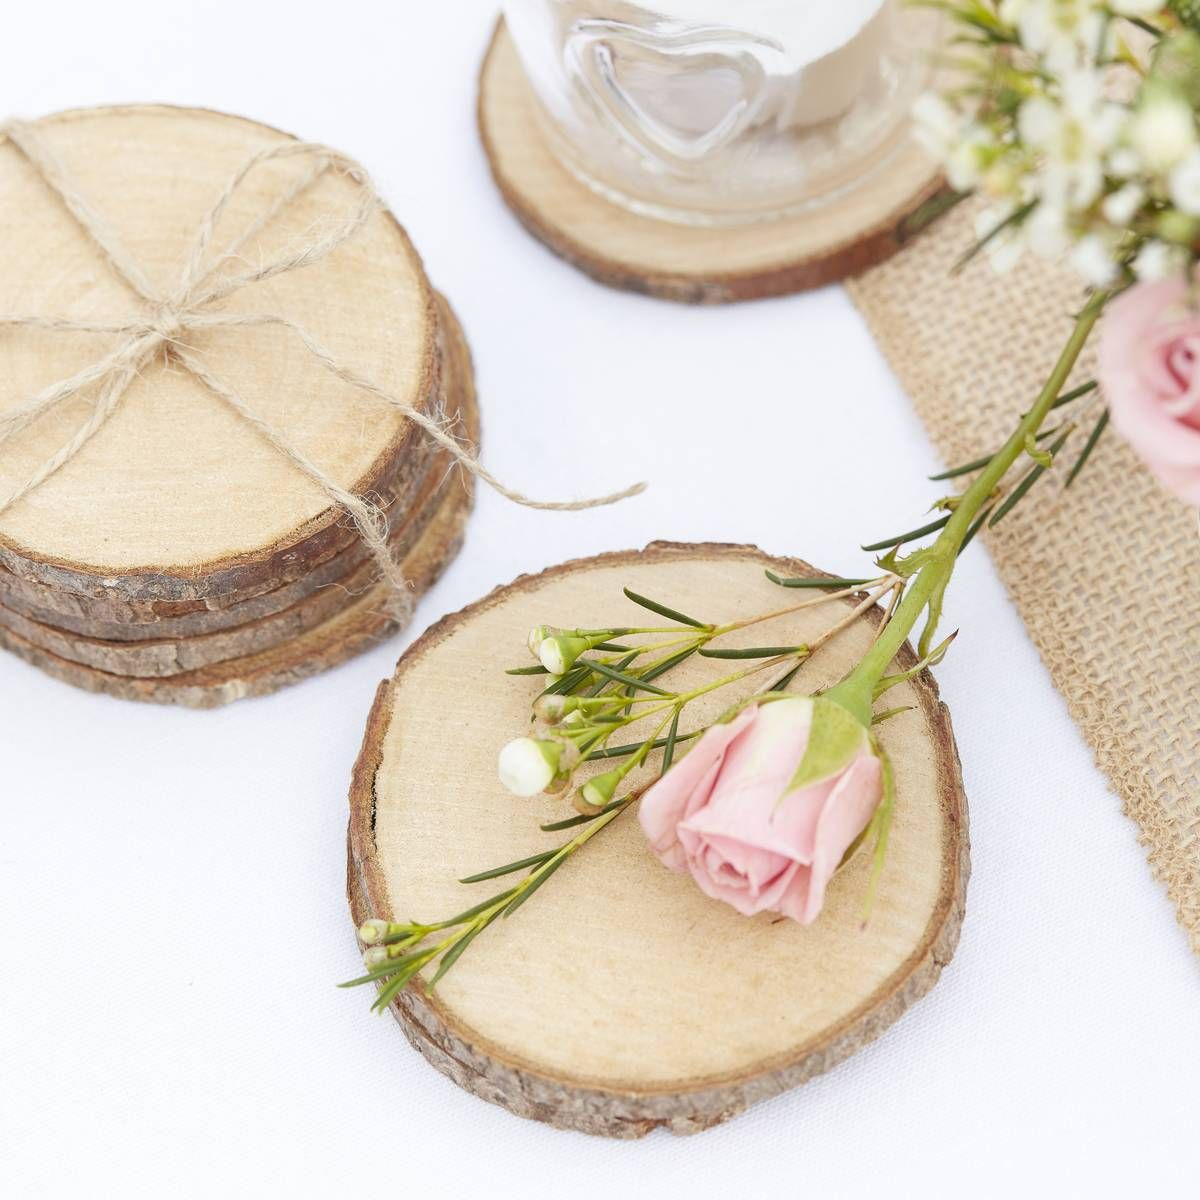 40+ Wood slices for crafts uk ideas